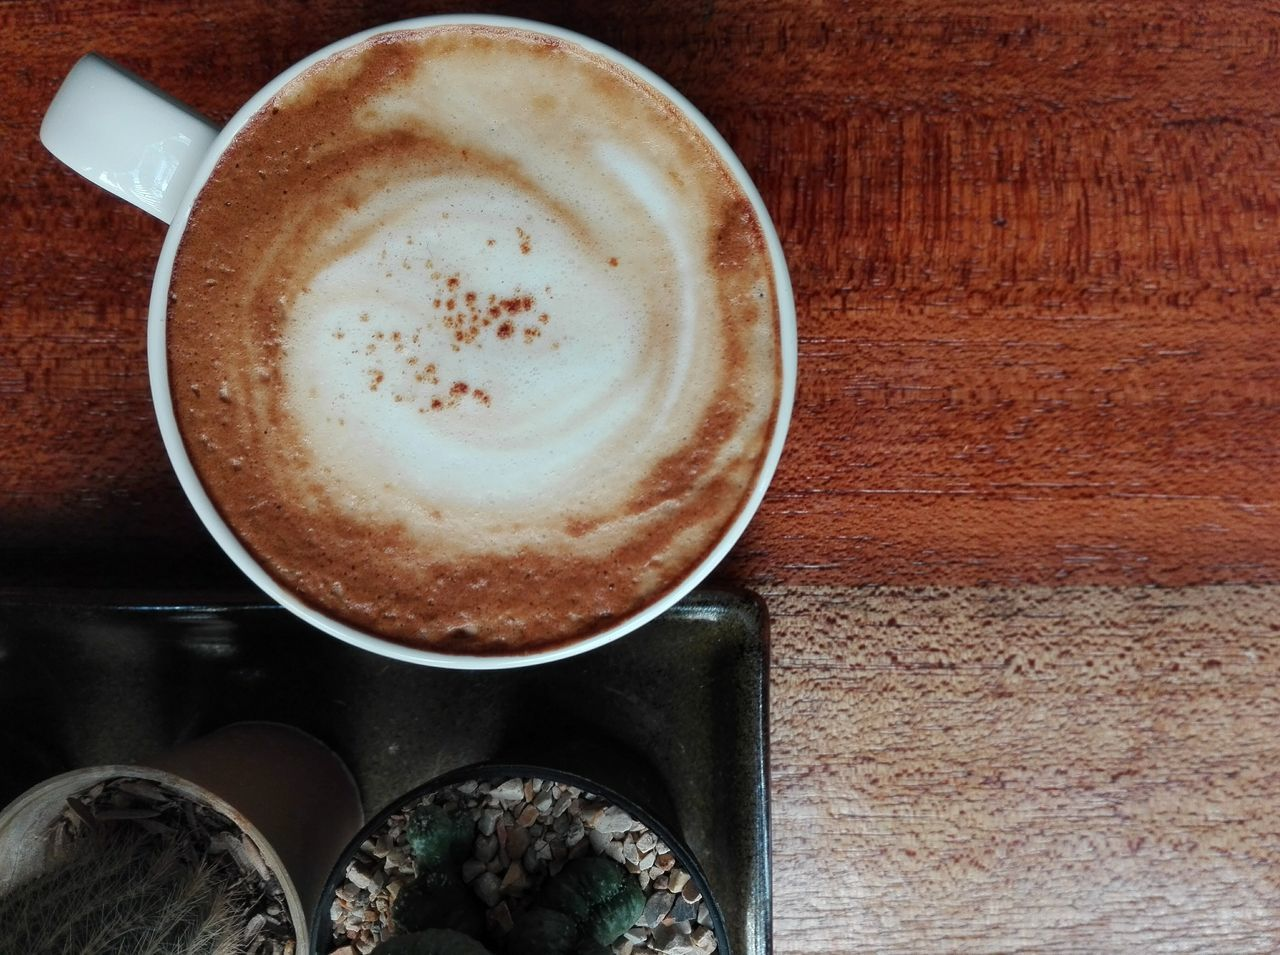 Drink Coffee - Drink Coffee Cup Frothy Drink Food And Drink Table Refreshment Cappuccino Freshness High Angle View Indoors  No People Close-up Froth Art Cappuccino ☕️ Froth Day Cooffetime Cooffee Cooffeelover Cup Cup Of Coffee Cup Cappuccino